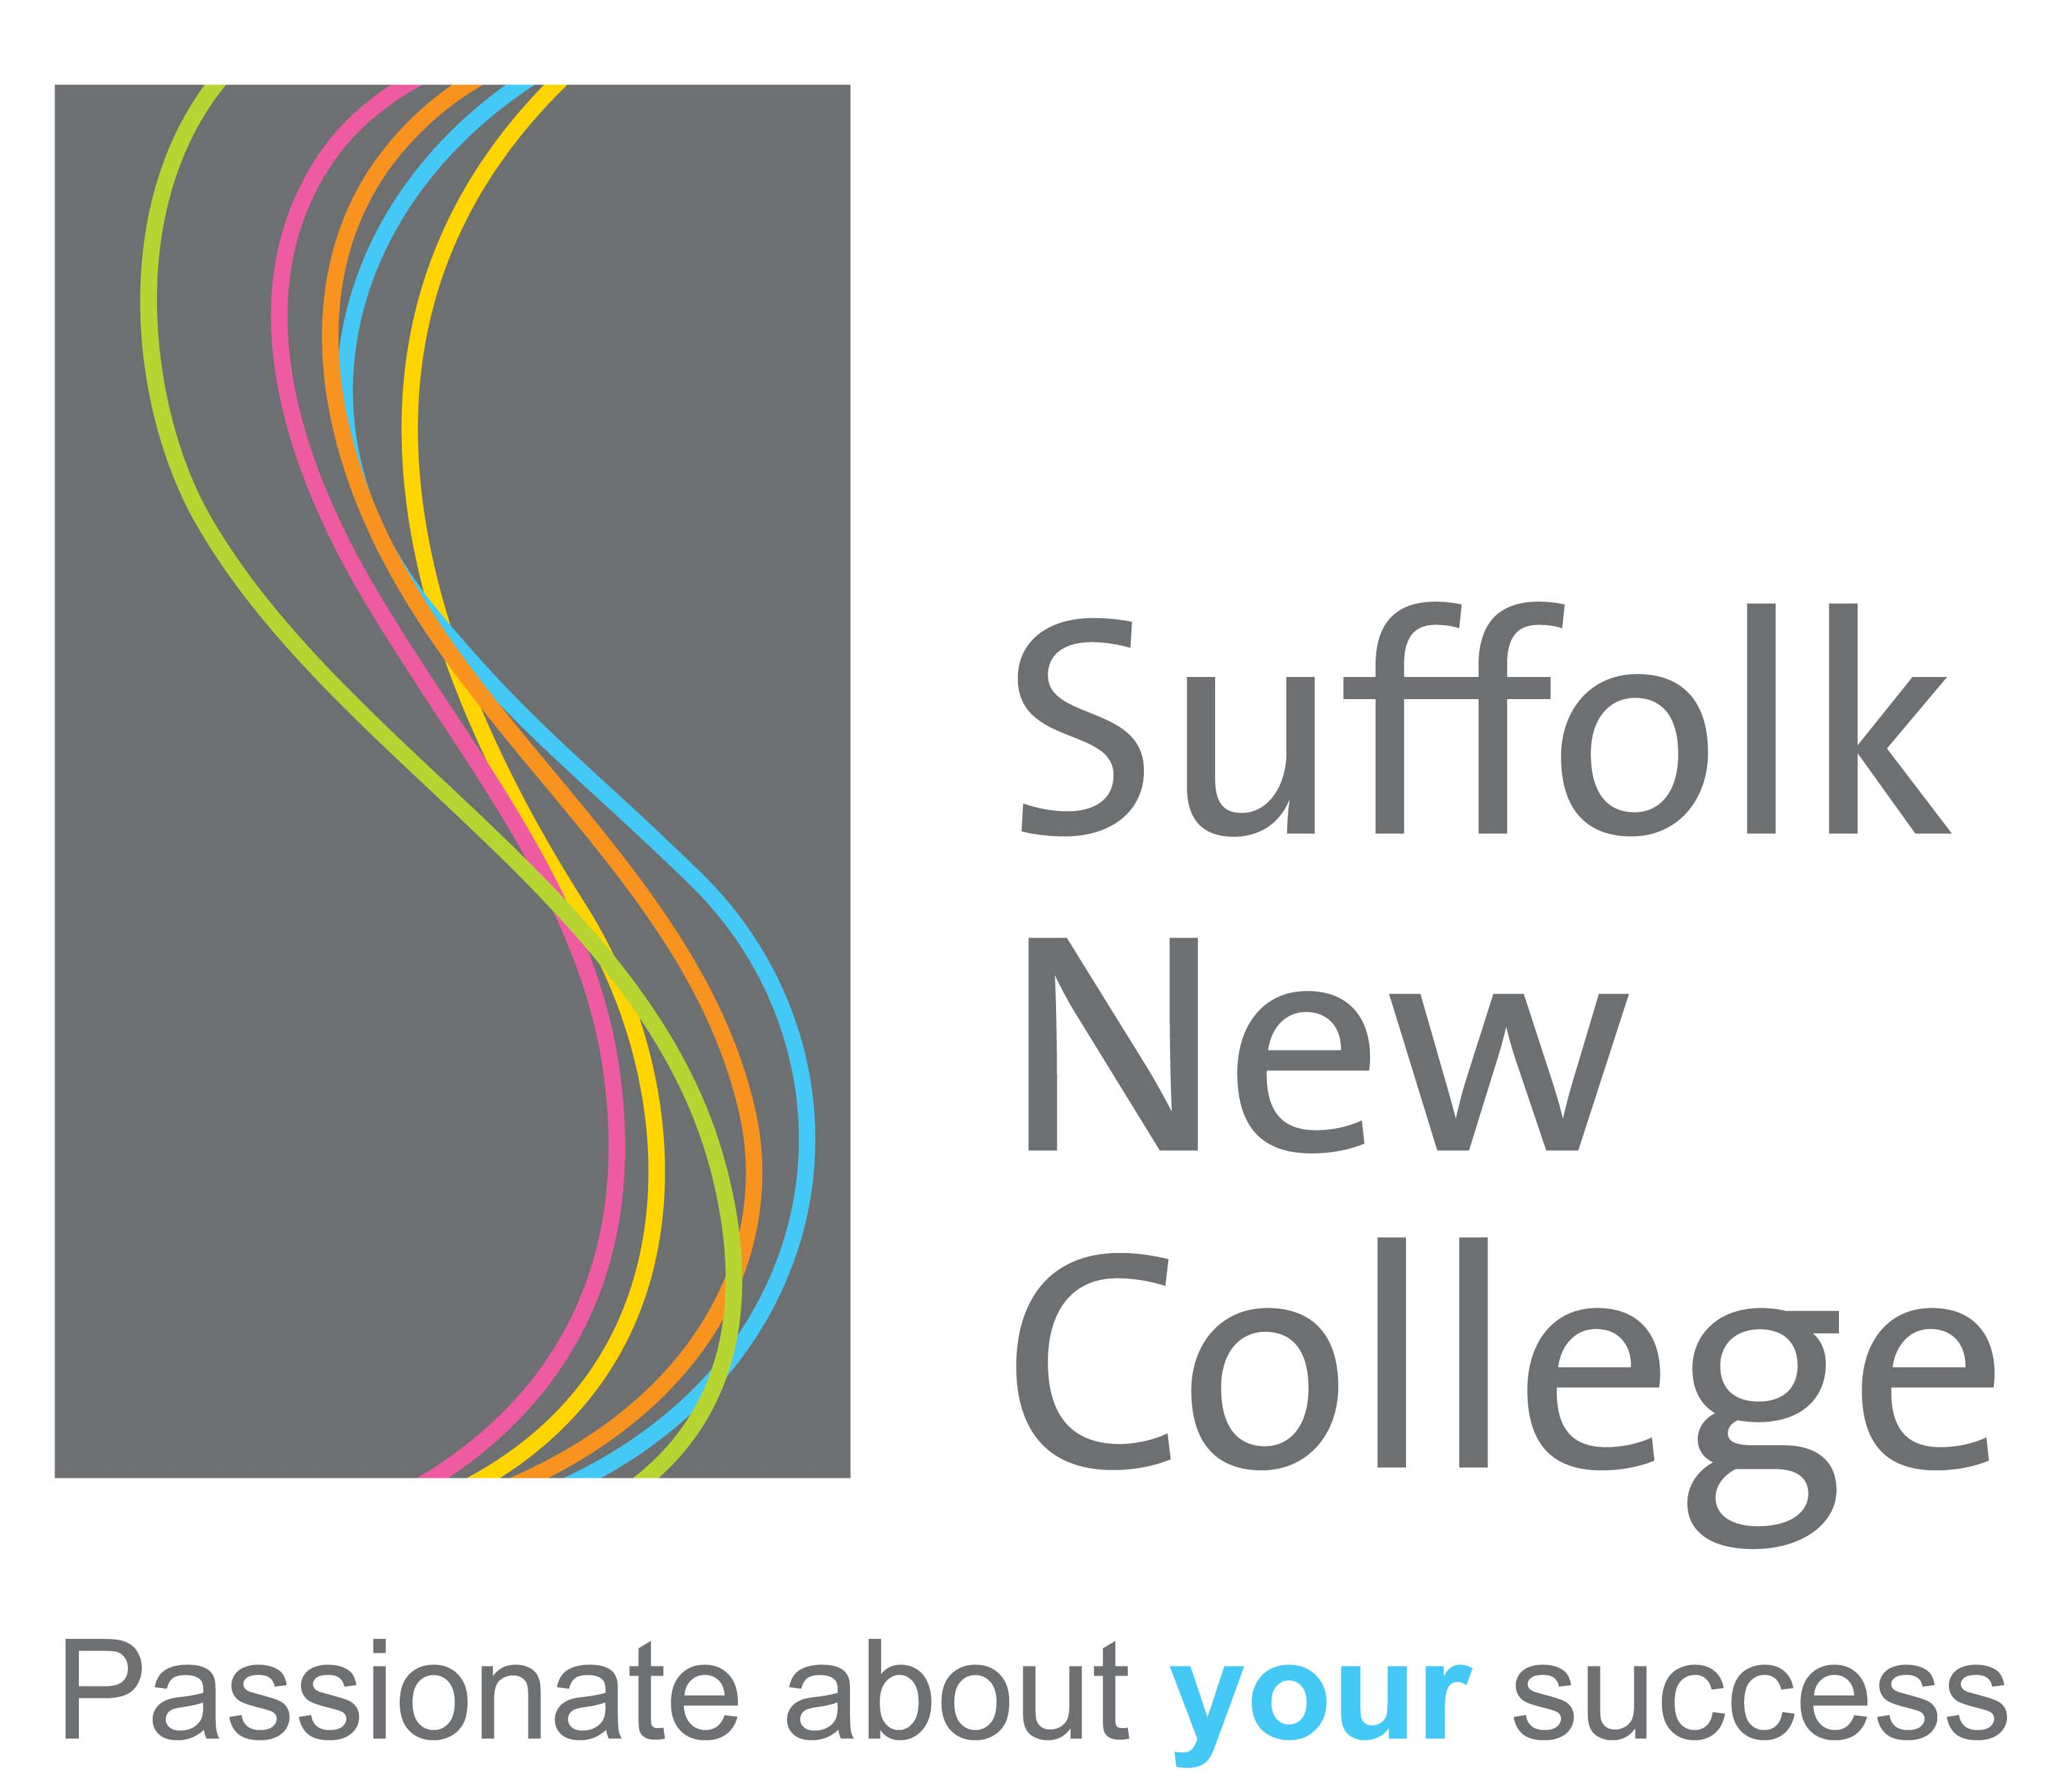 Suffolk New College